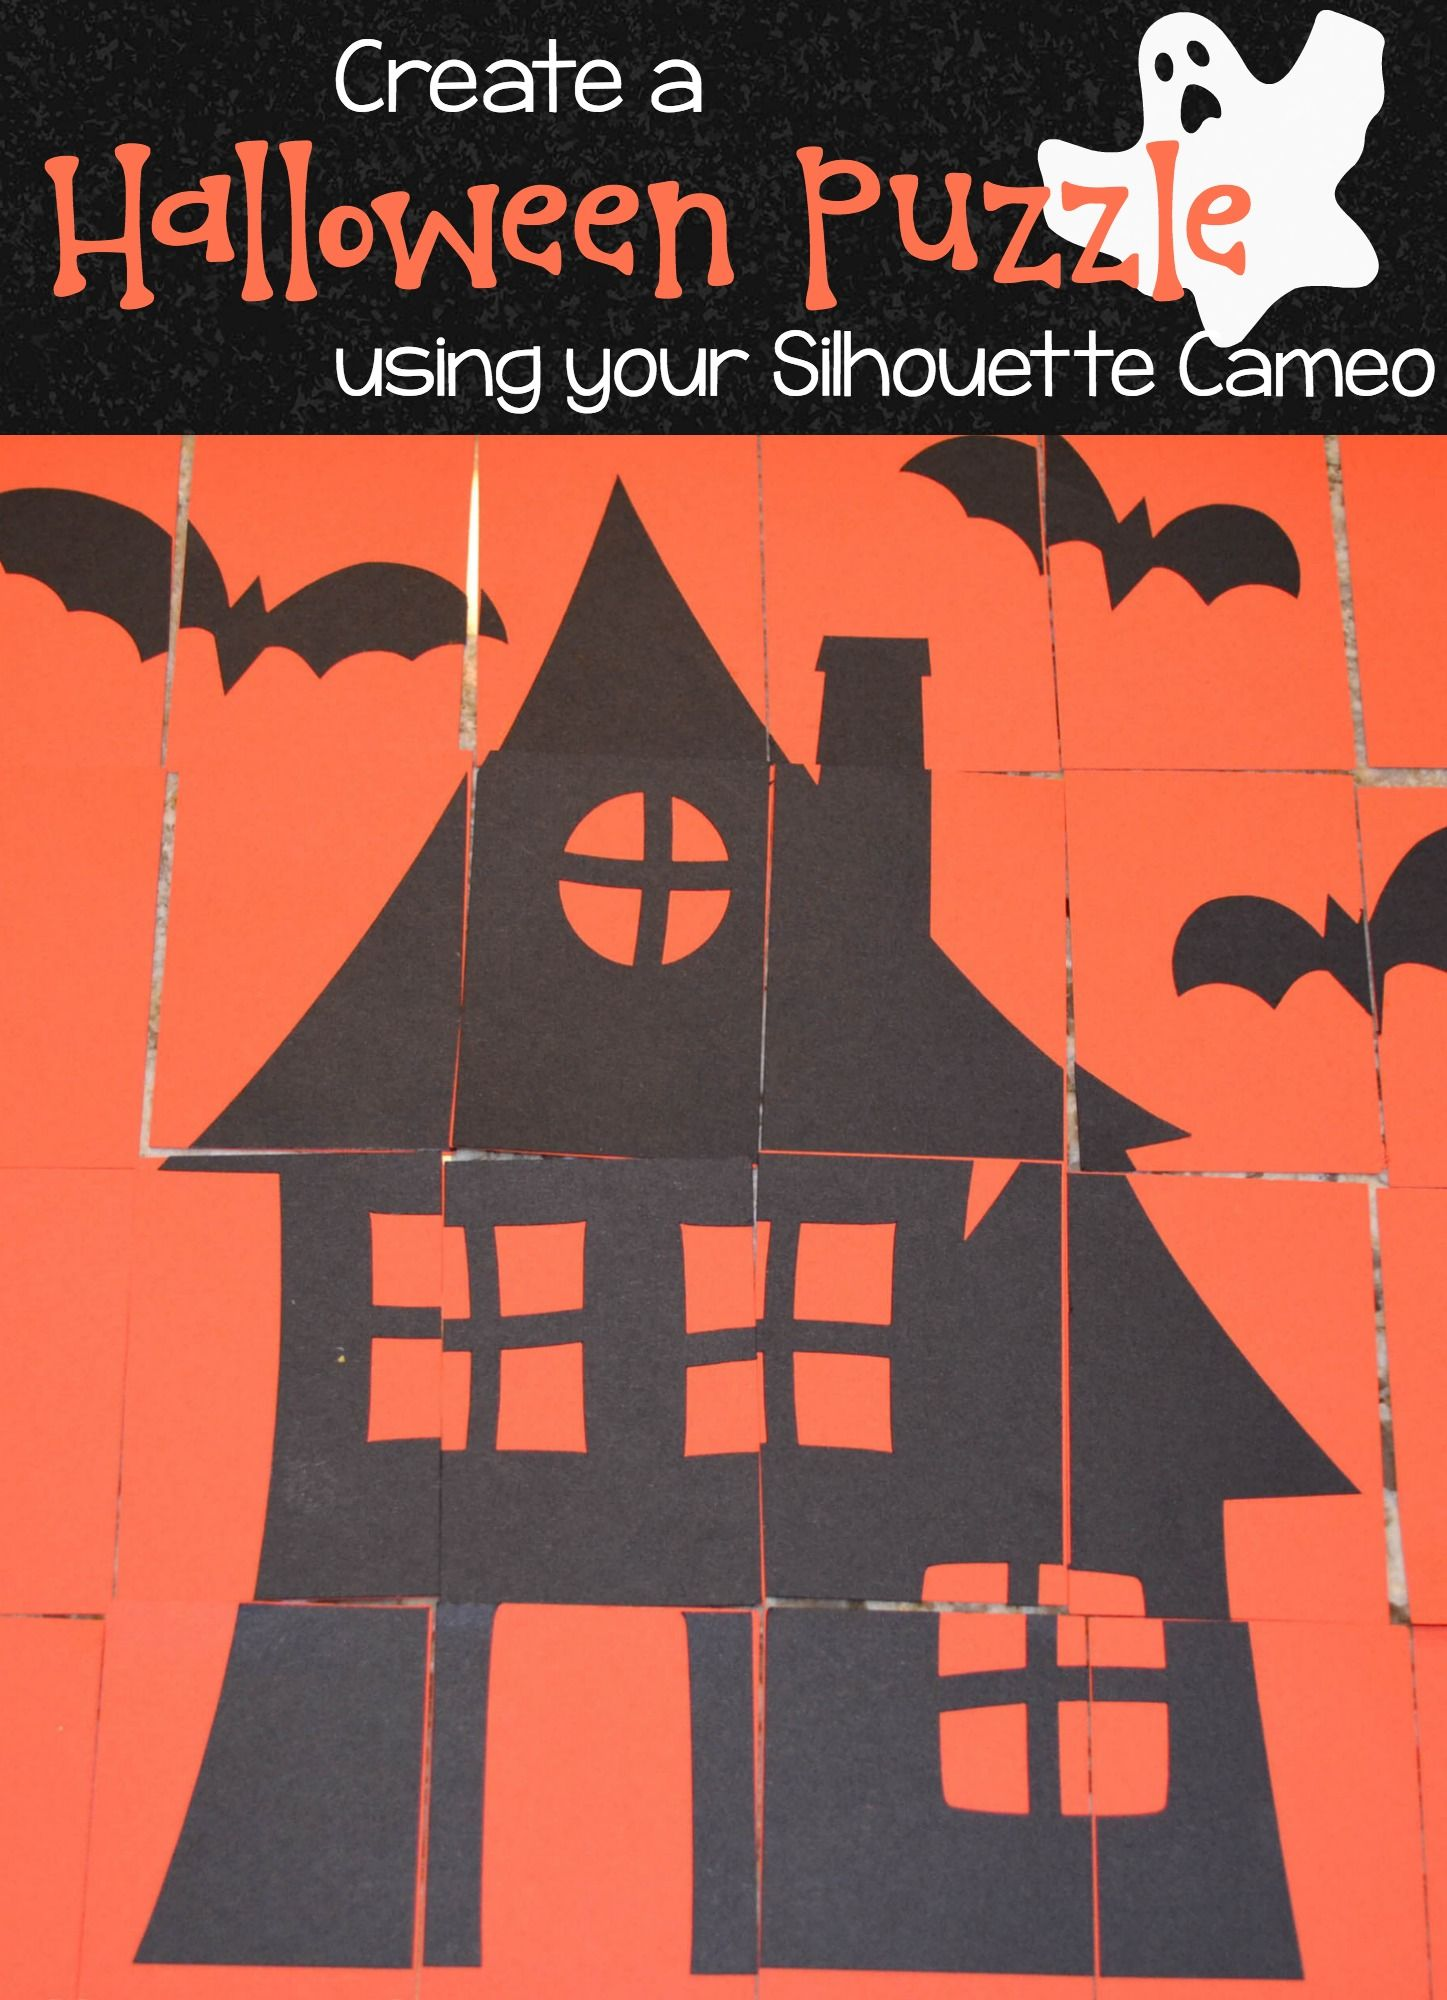 Amelia and Me Crafts Halloween Puzzle #silhouette #halloweenpuzzle #halloweencraft #silhouettehalloween